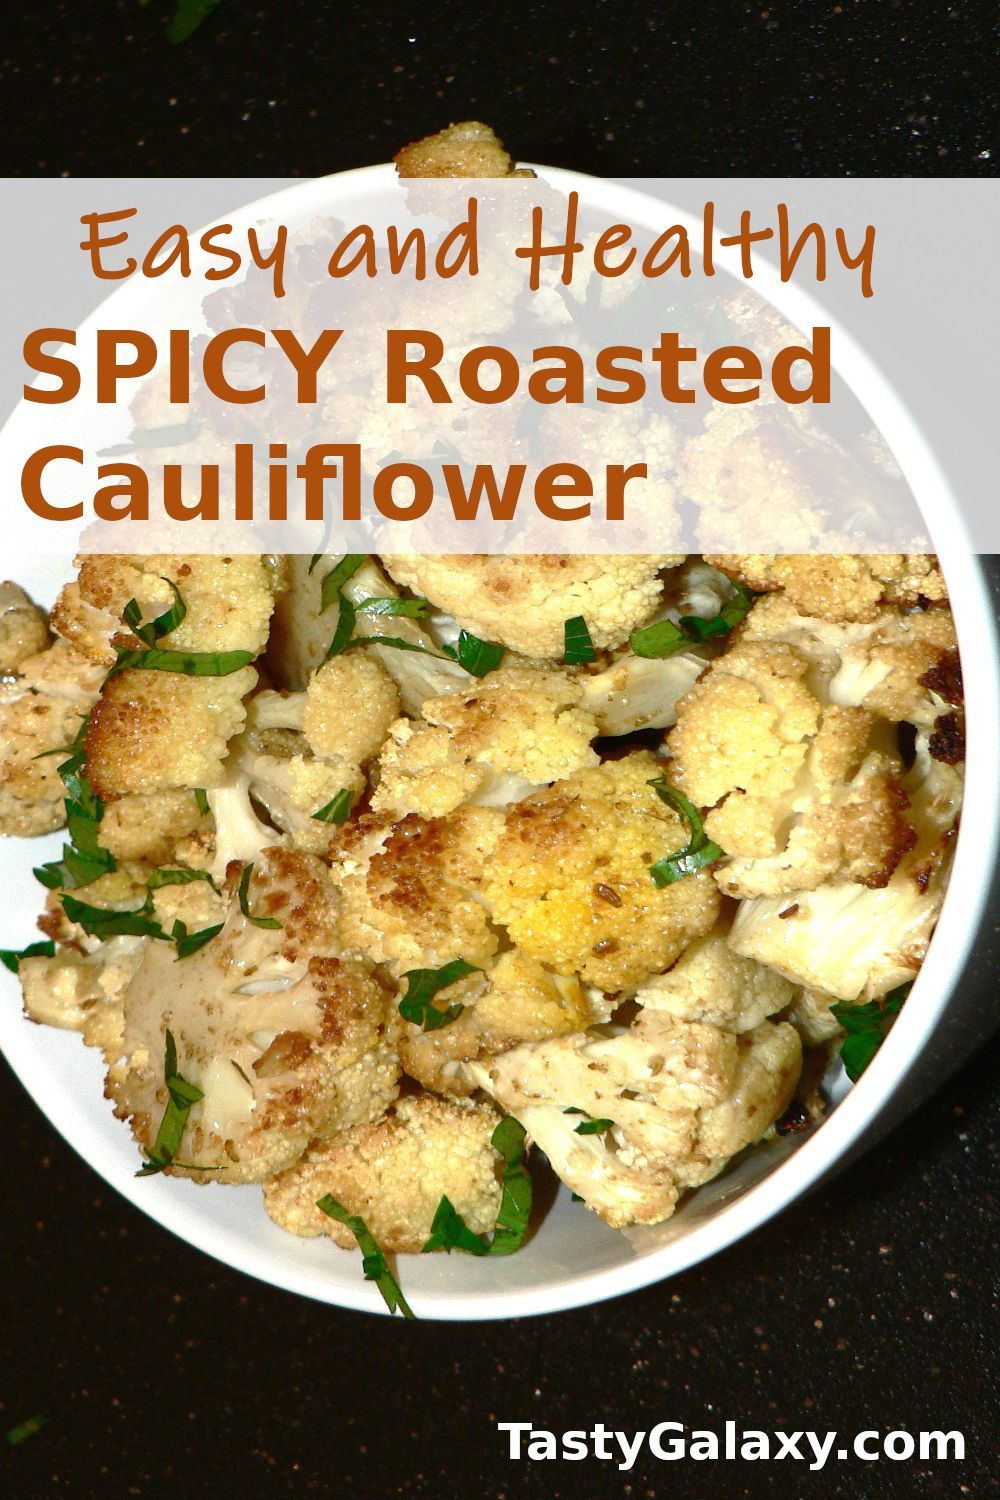 Spicy Roasted Cauliflower Recipe In 2020 Vegetarian Side Dishes Thanksgiving Dinner Recipes Easy Vegetarian Thanksgiving Recipes